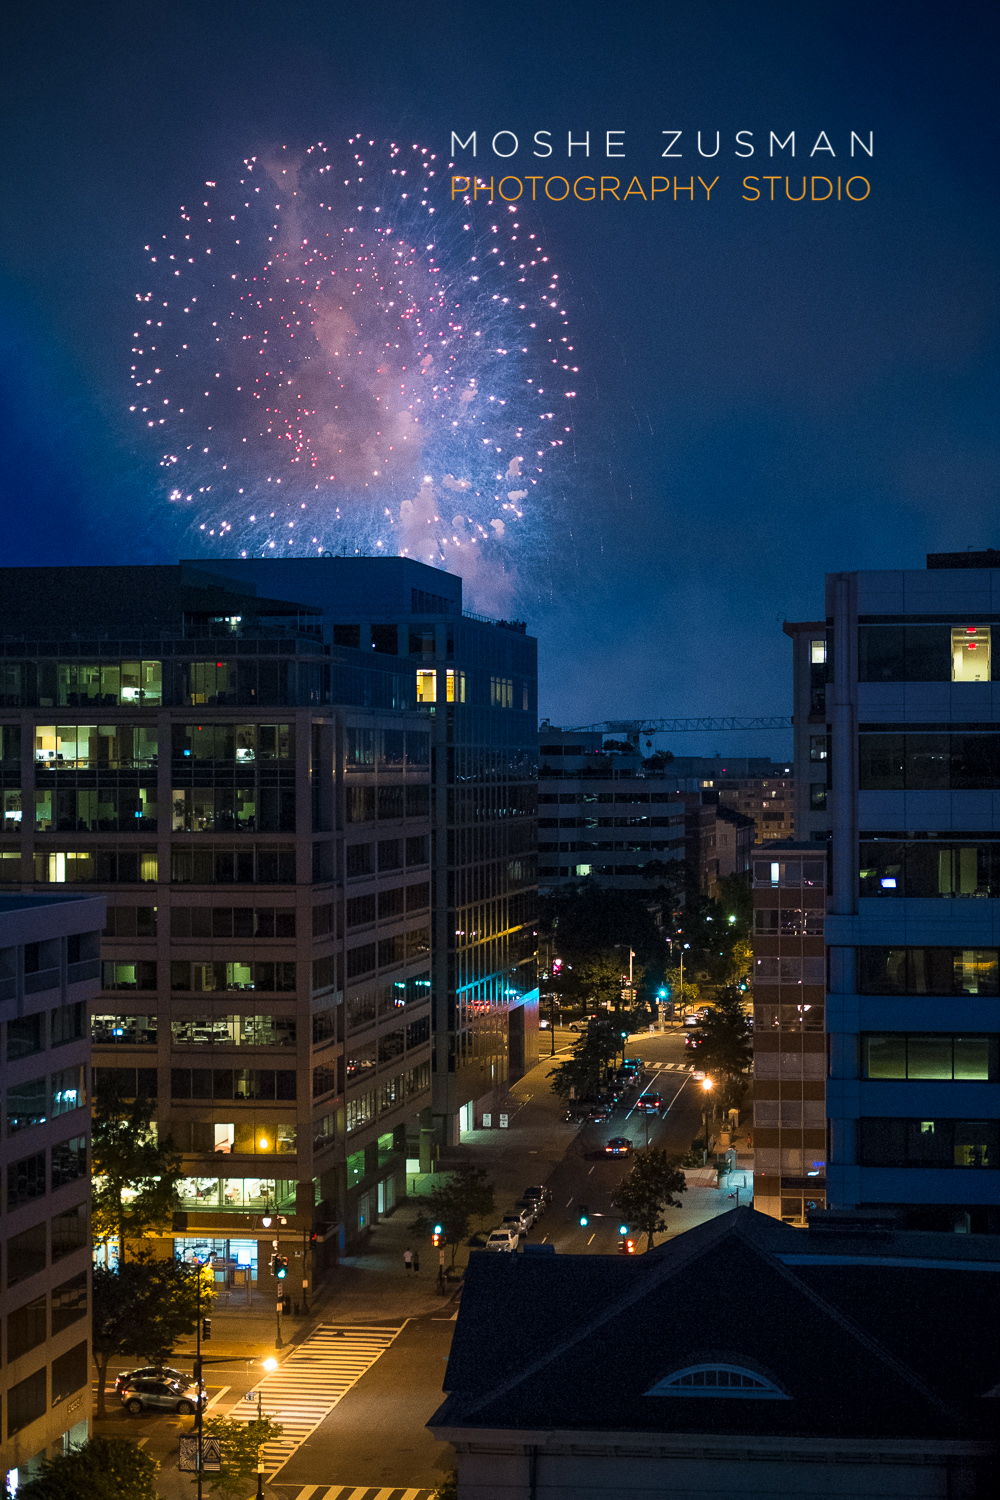 July-4th-fireworks-washington-dc-moshe-zusman-02.JPG